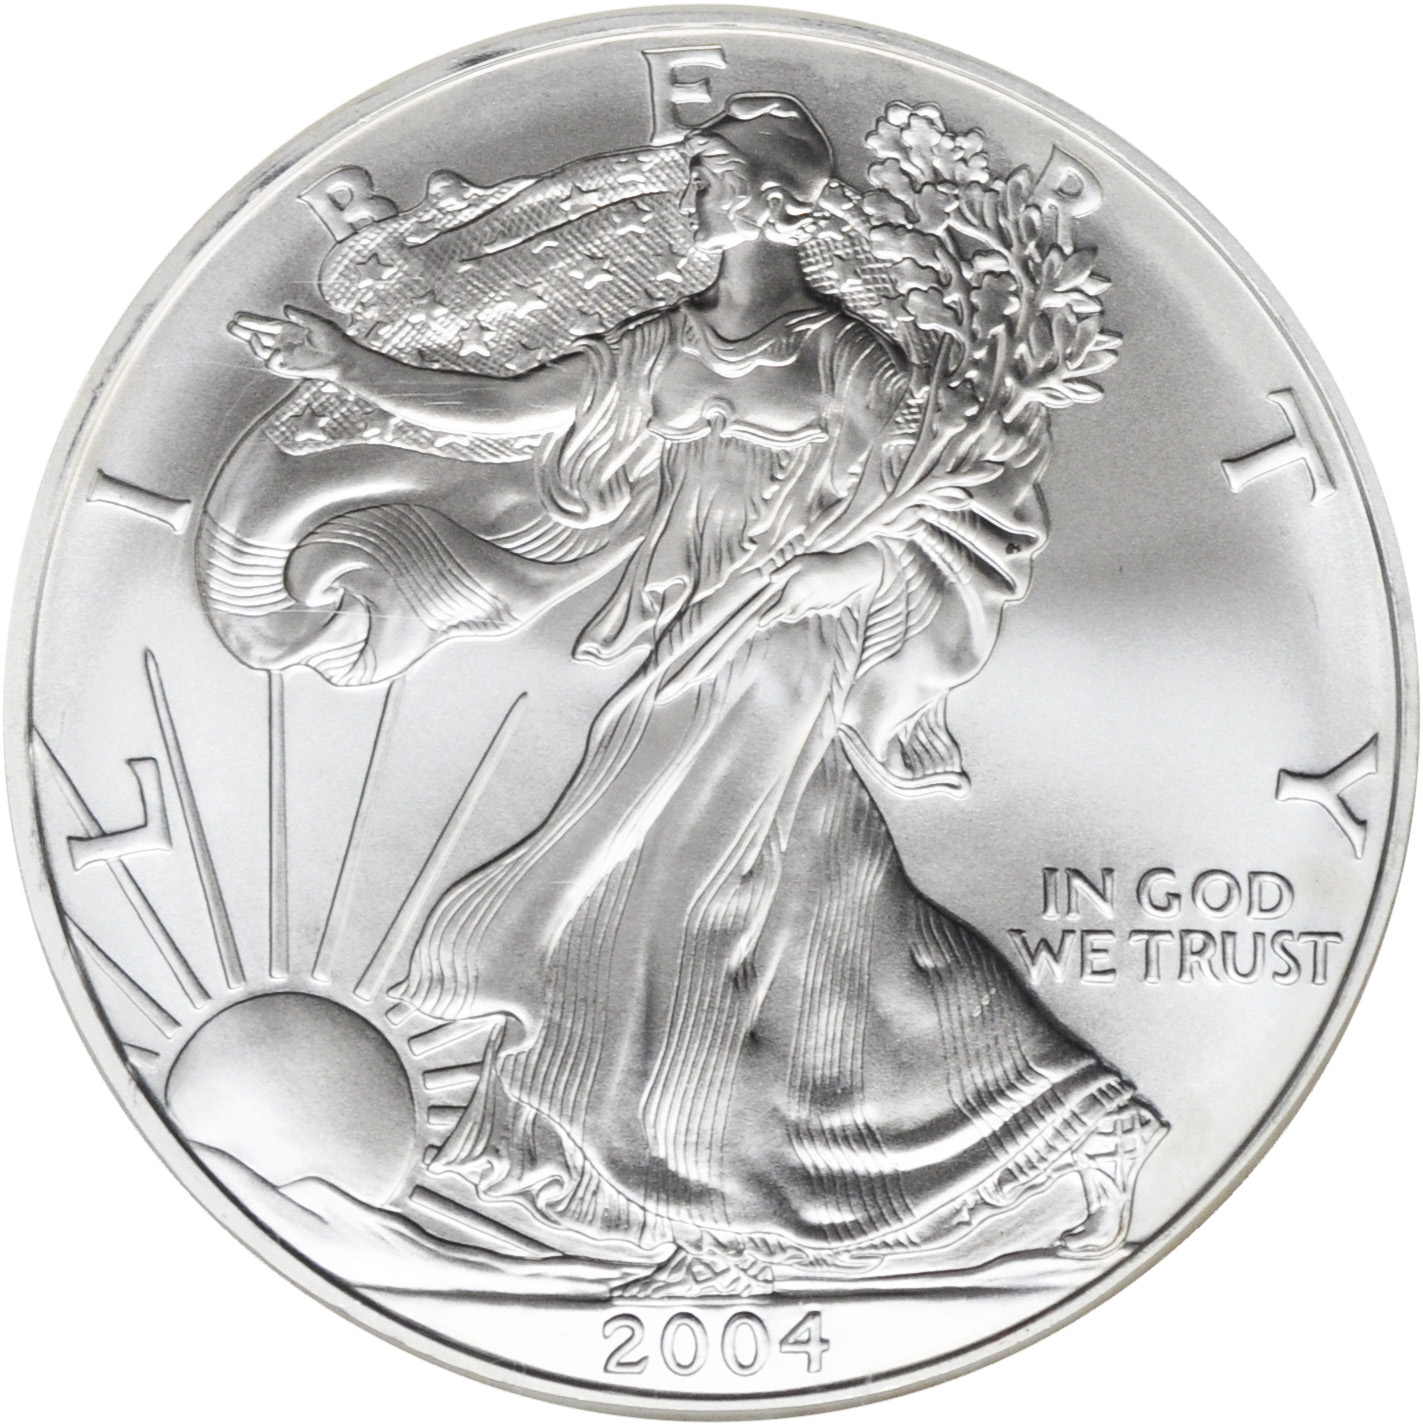 Value Of 2004 American Silver Eagle 1 Coin